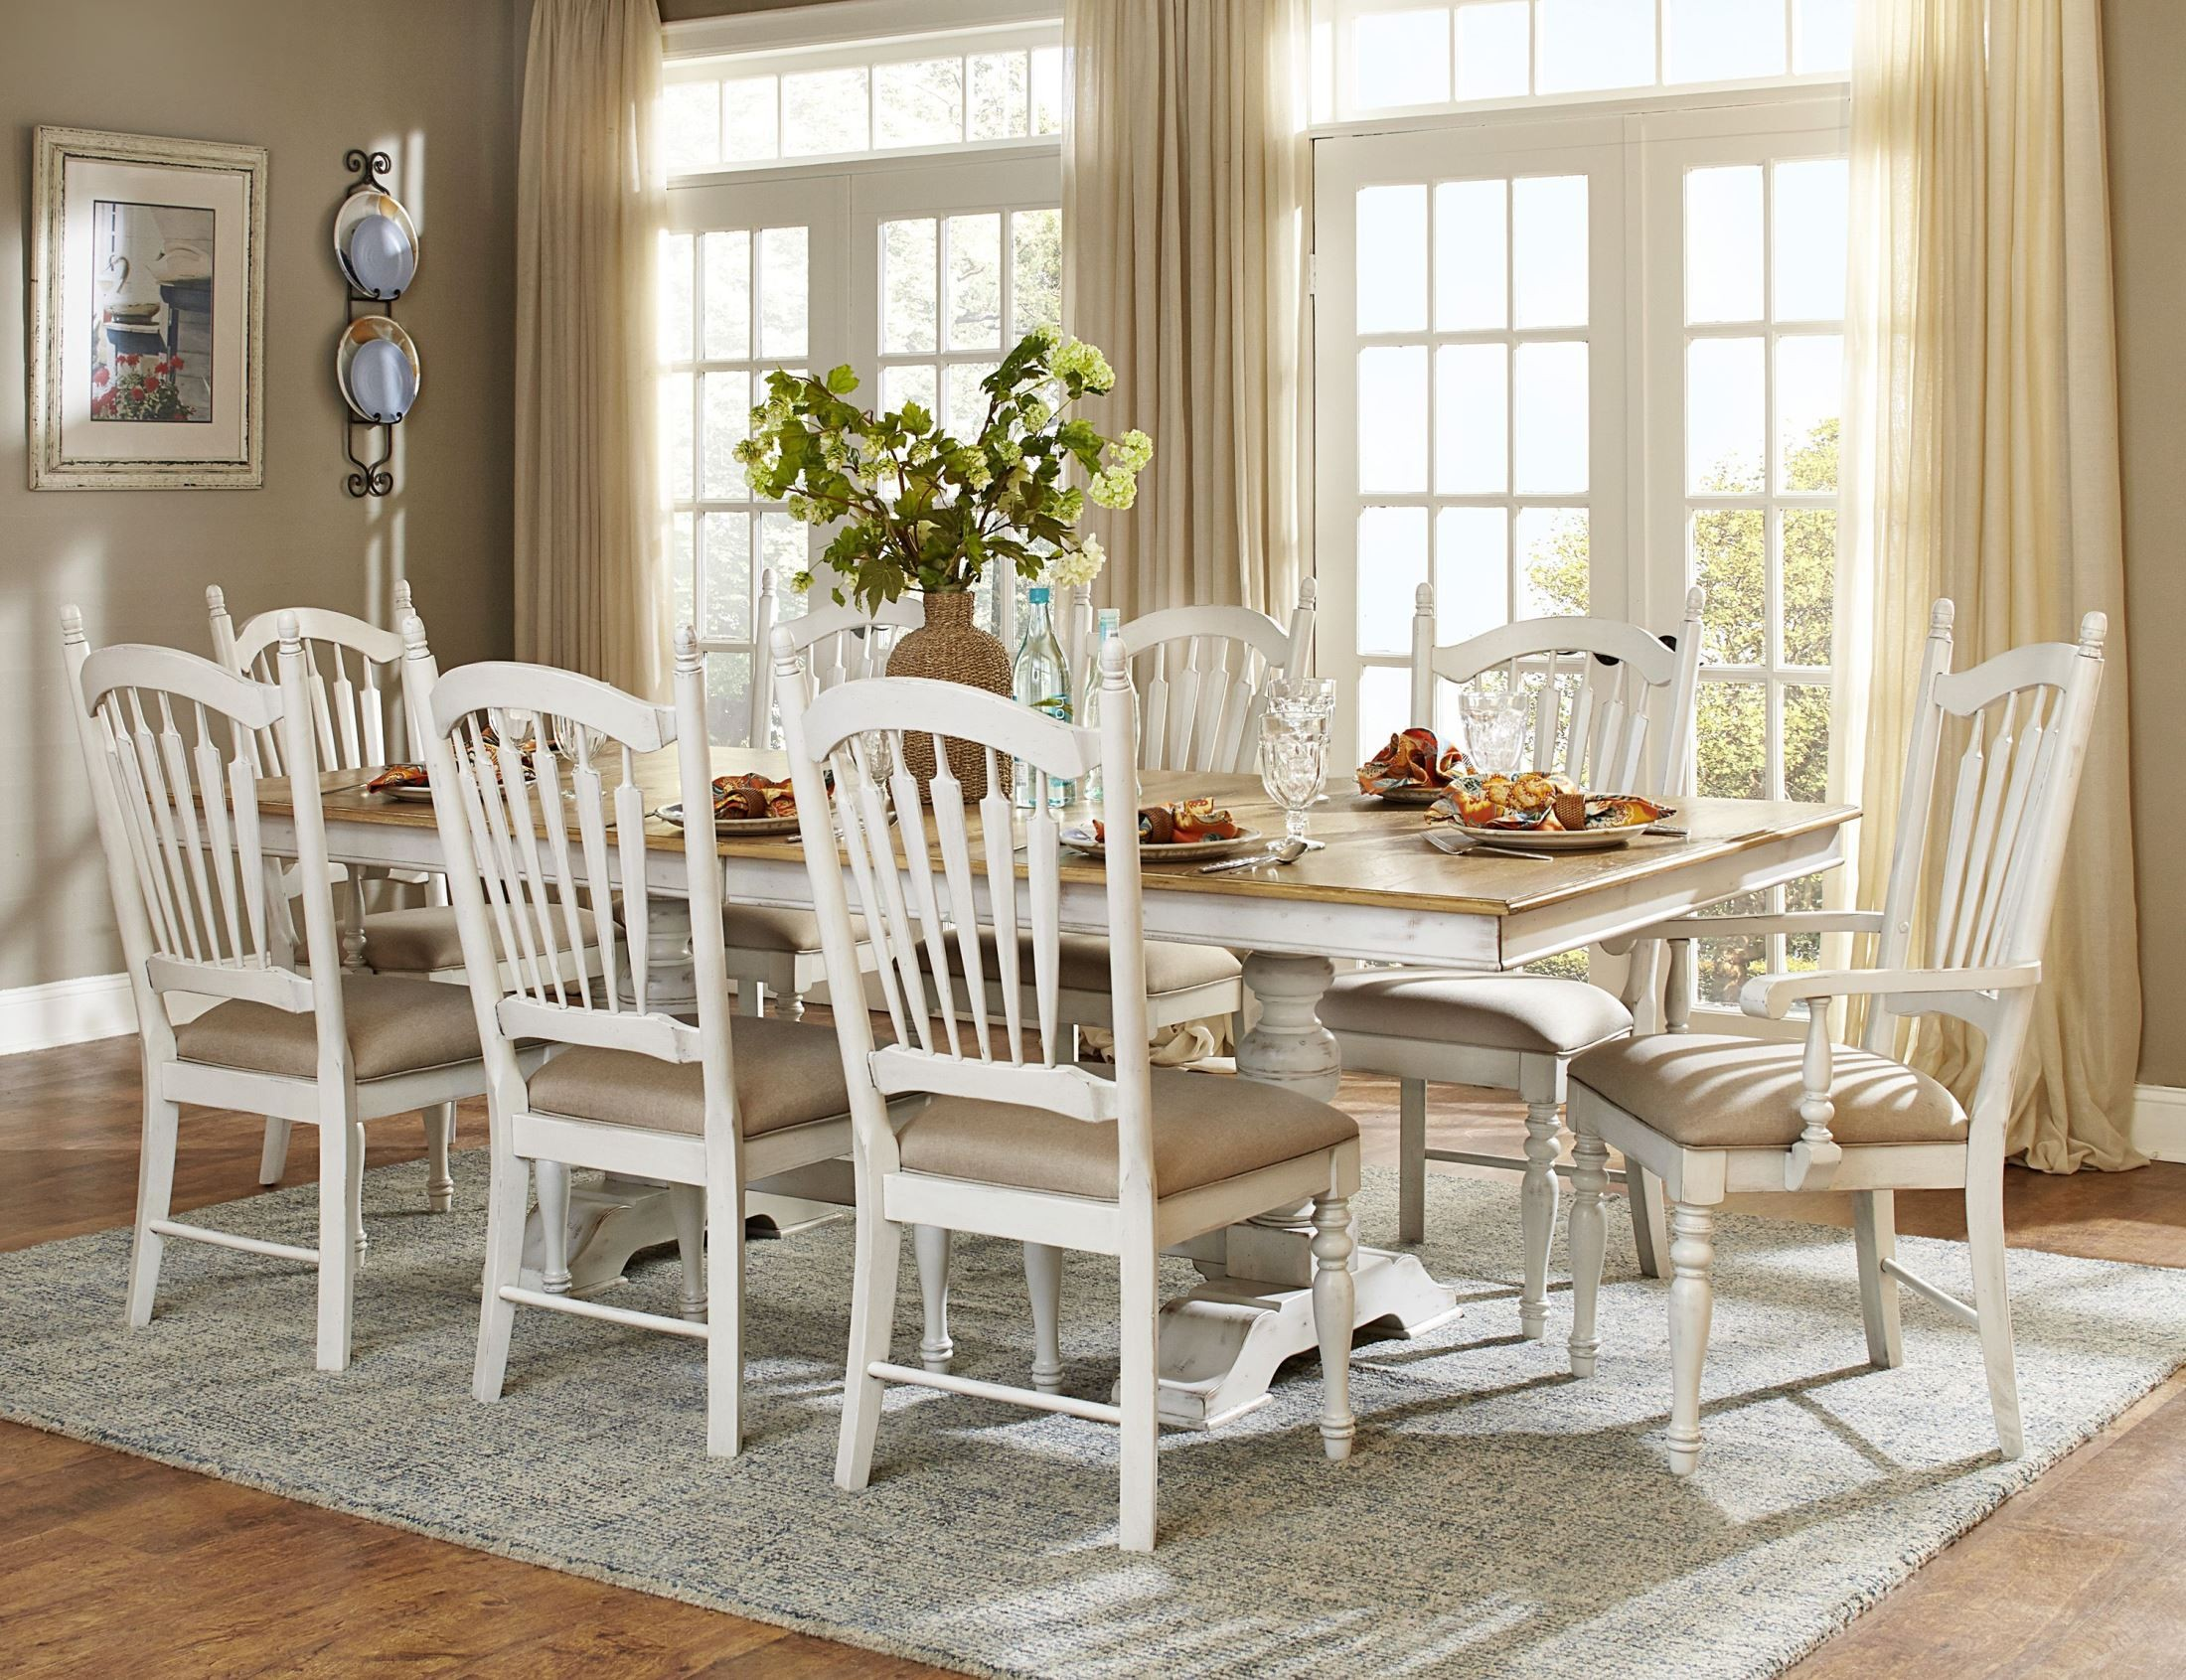 Hollyhock distressed white dining table from homelegance for Distressed white dining table